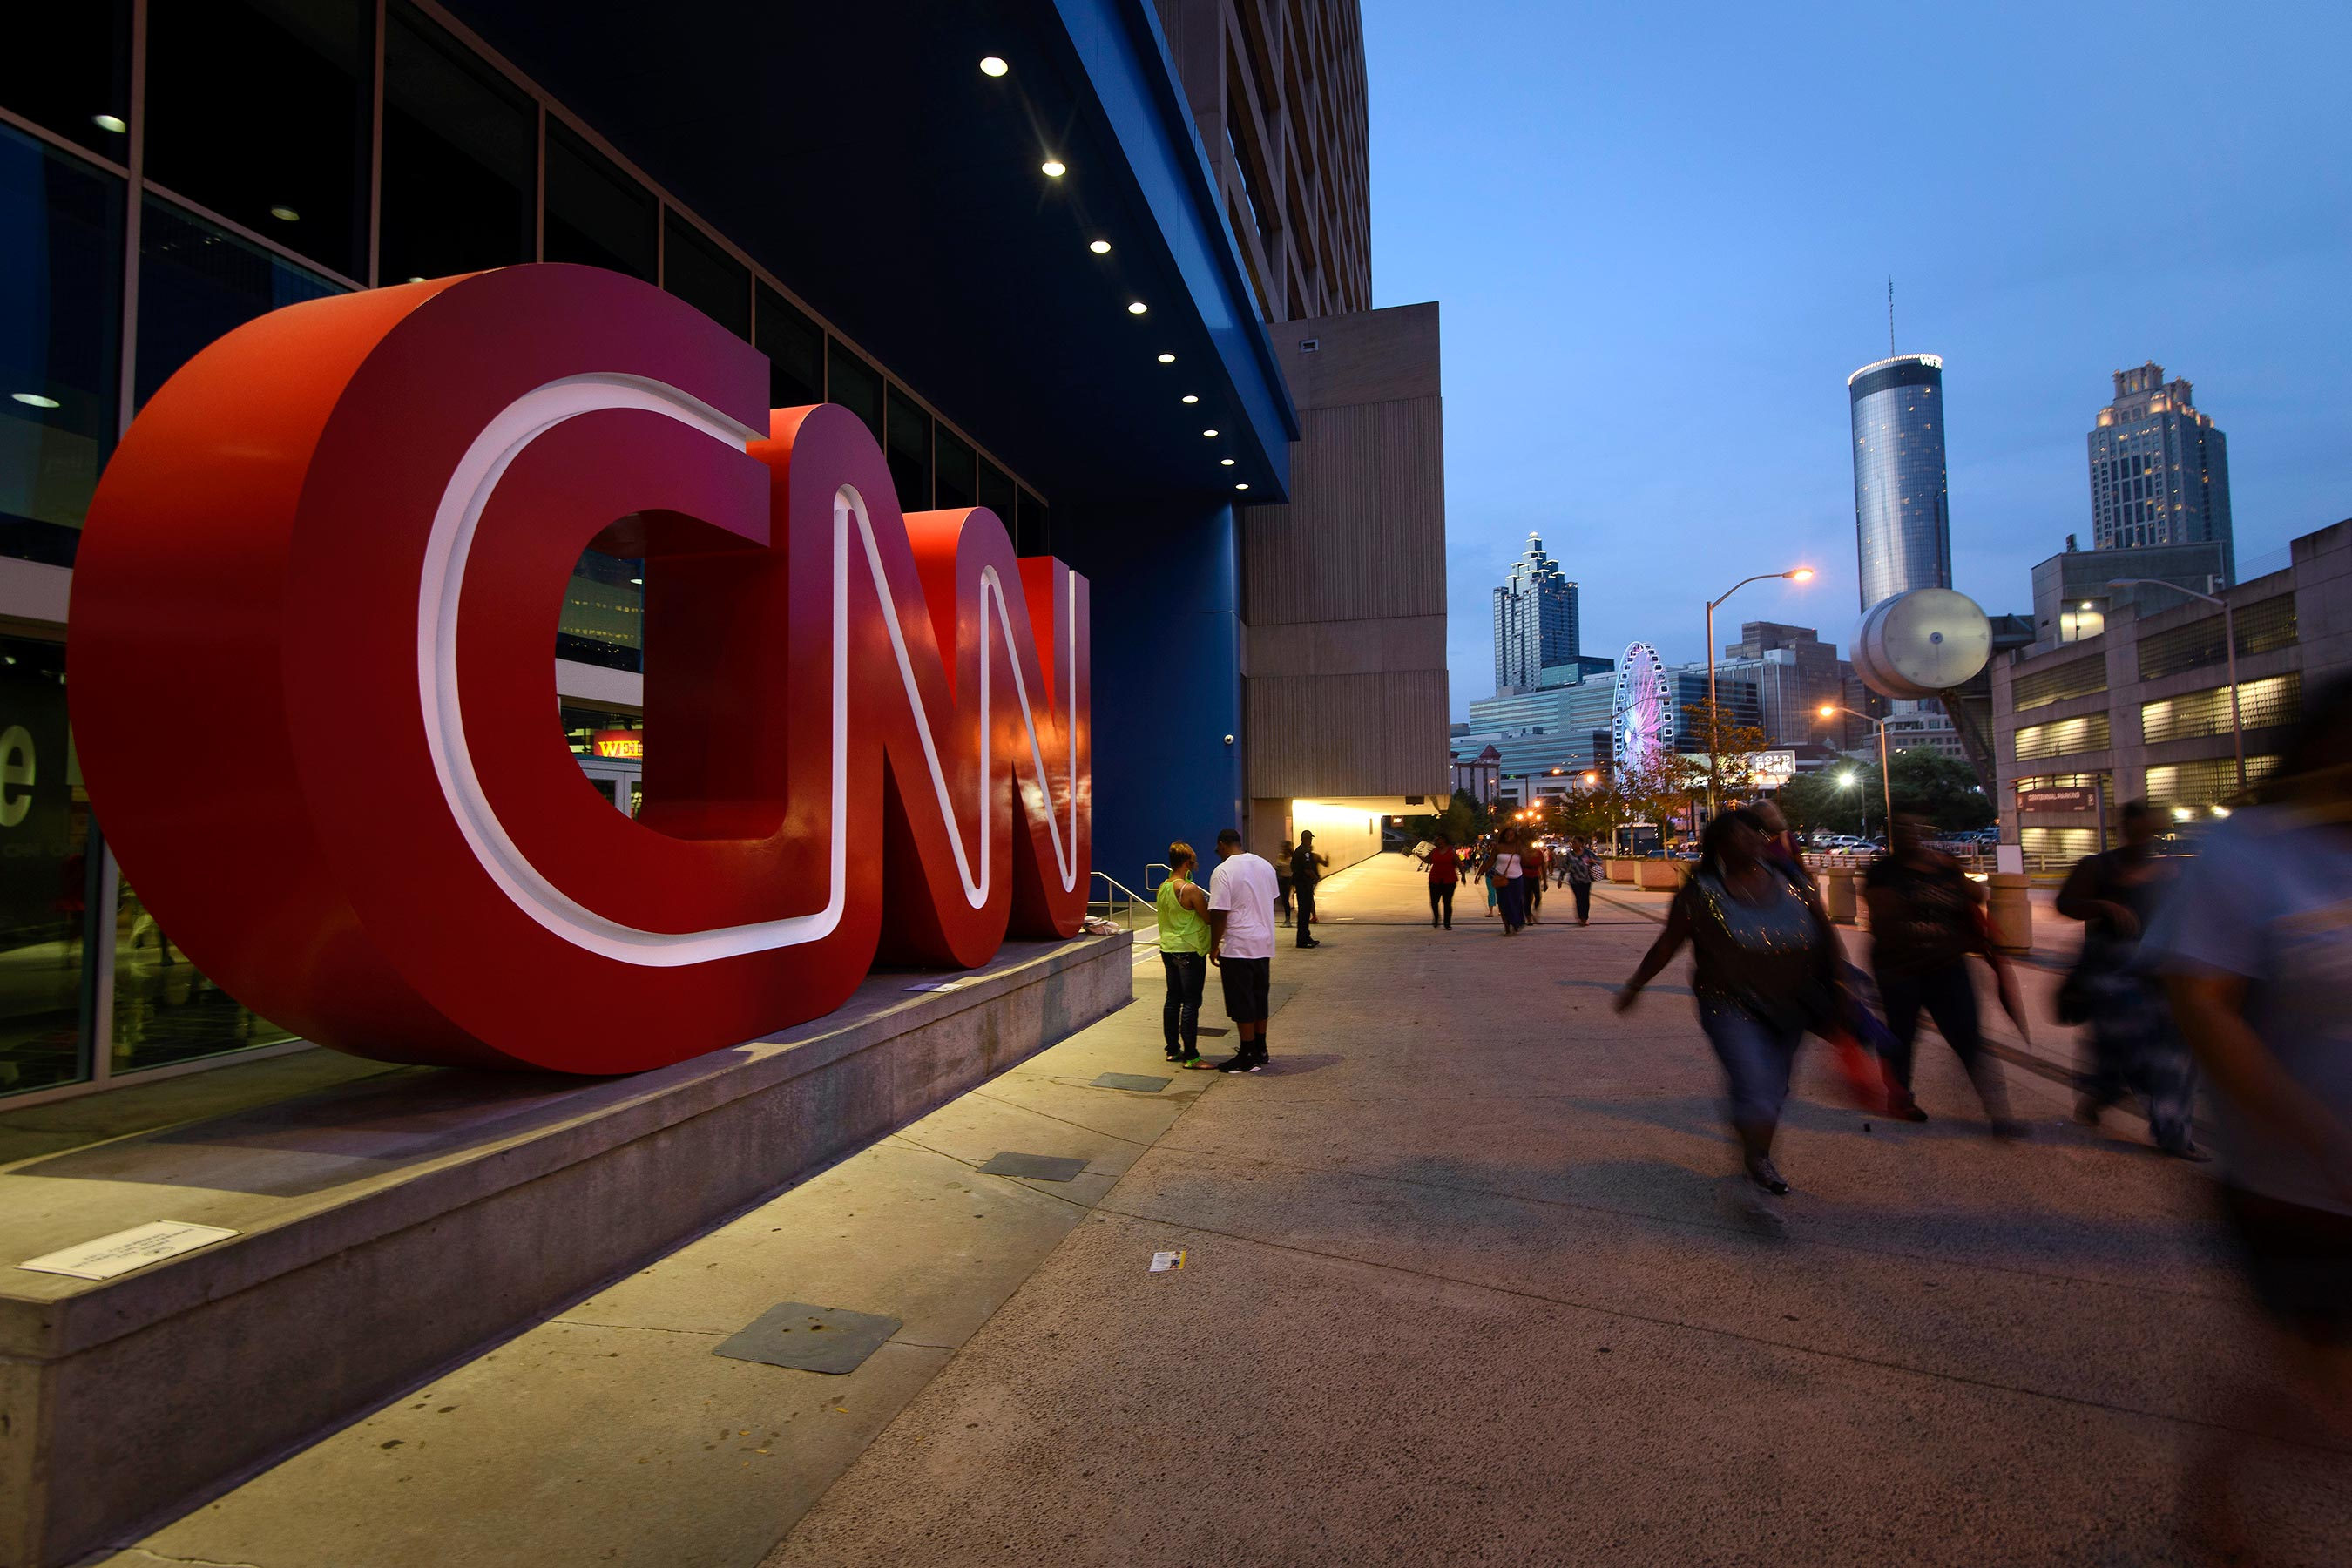 CNN: Man arrested for allegedly threatening to kill network employees